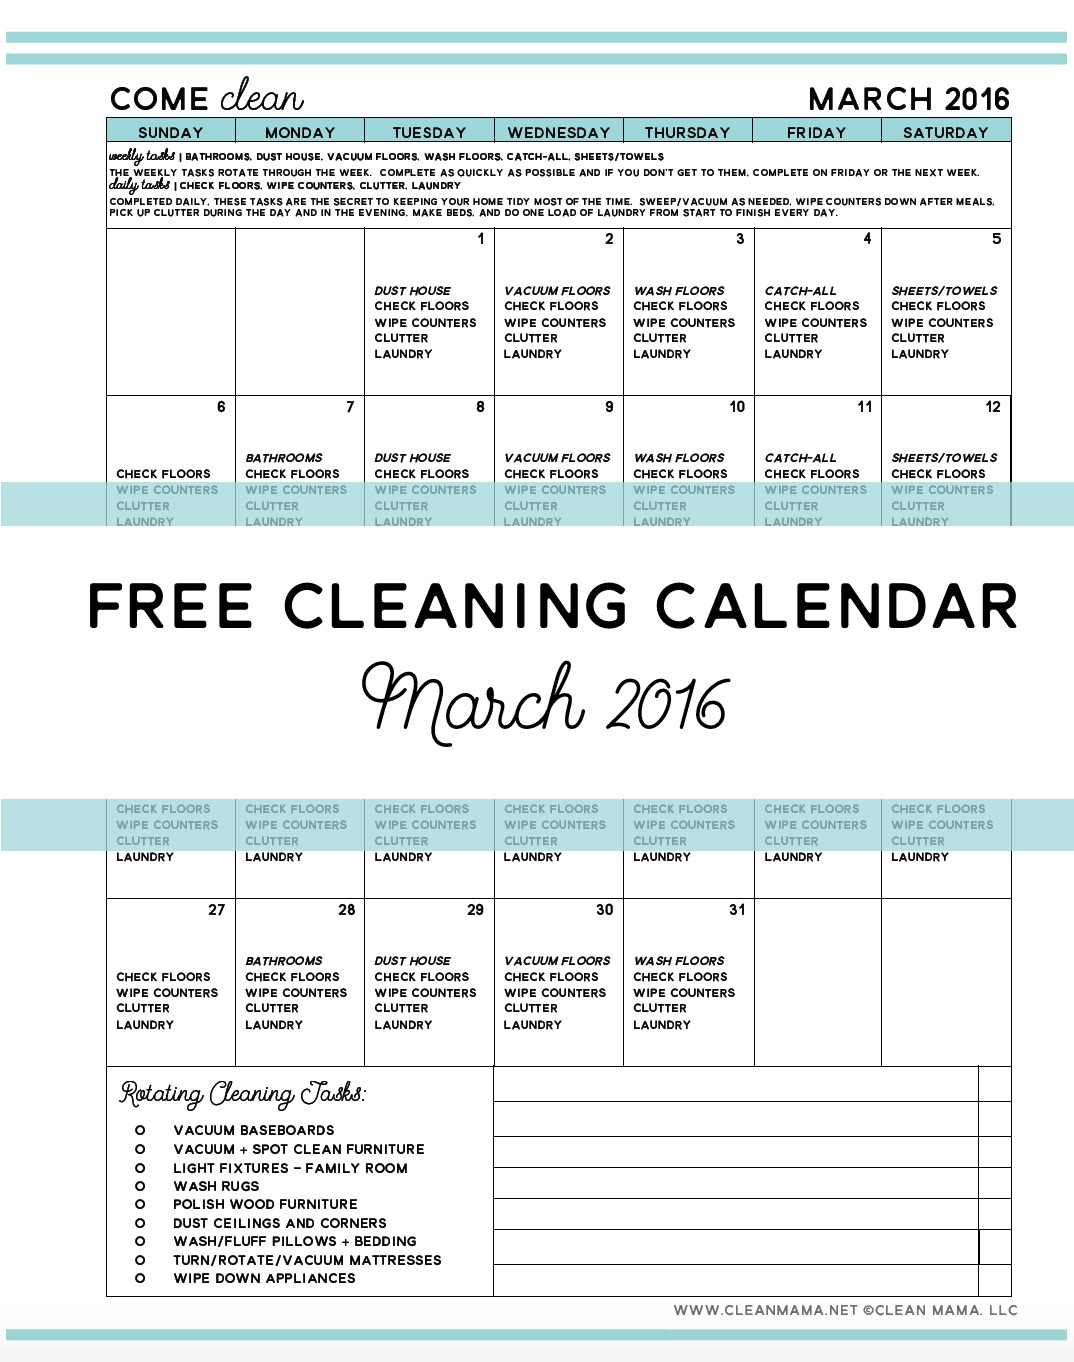 FREE Cleaning Calendar for March 2016 via Clean Mama